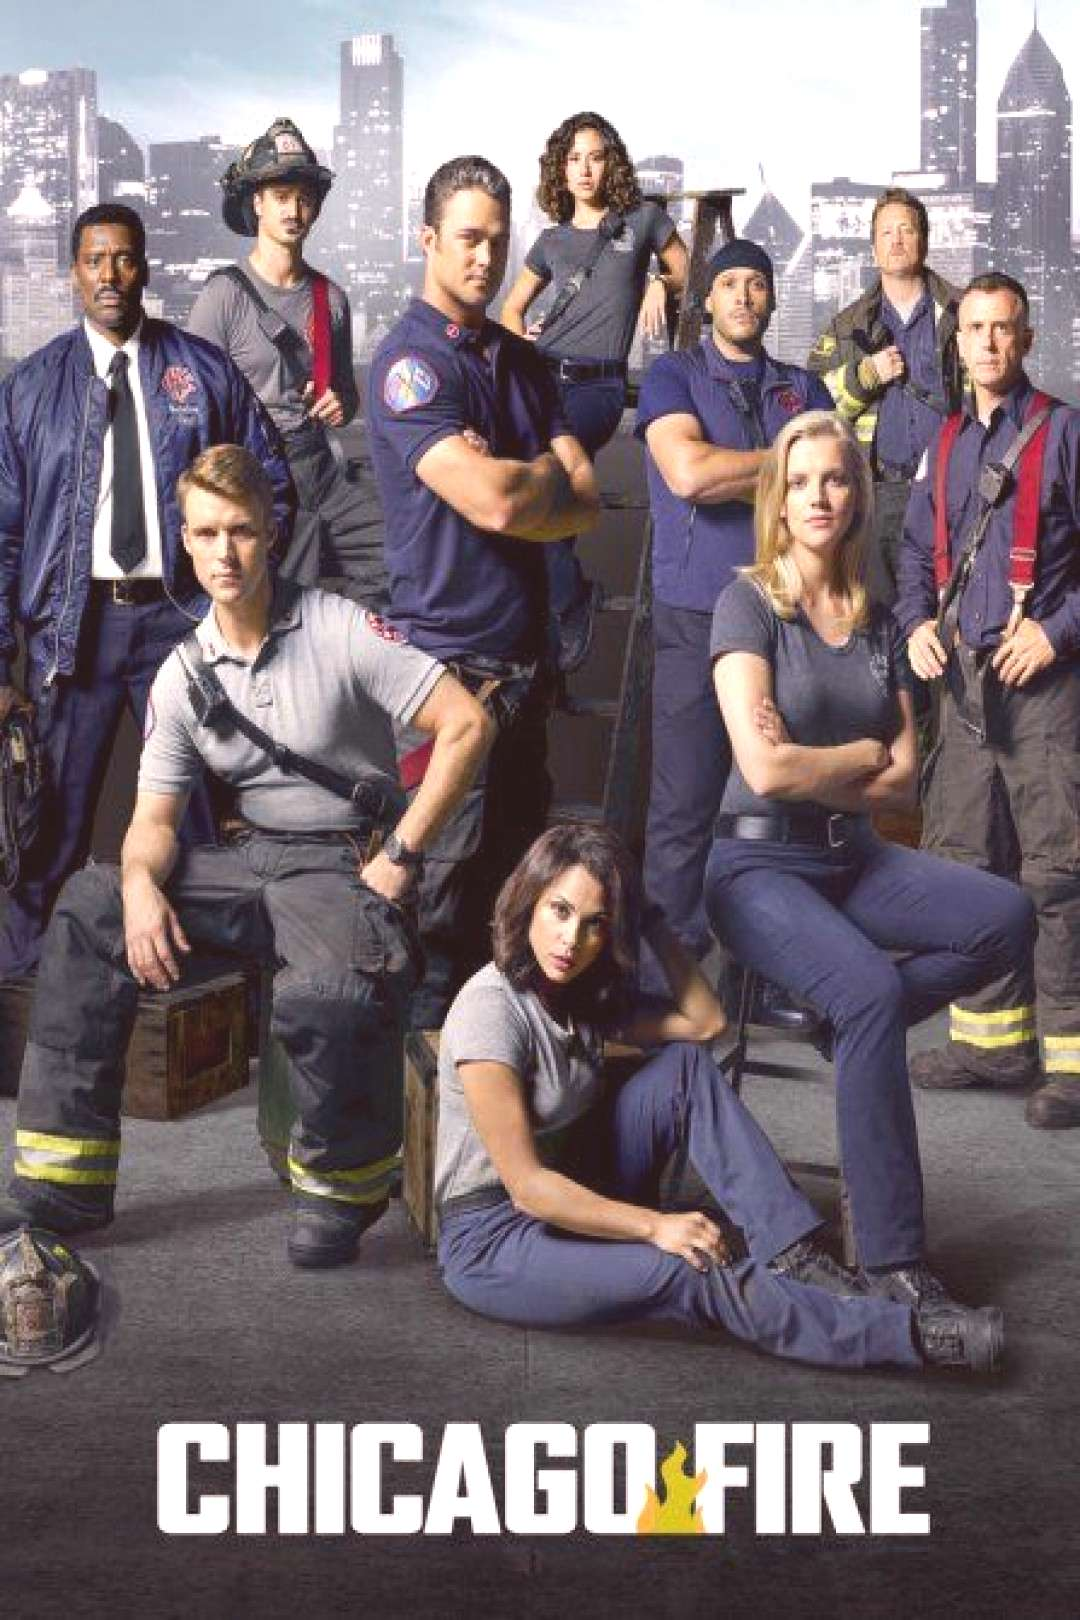 Photos - Chicago Fire - Season 4 - Posters and Wallpapers - NUP_170804_0003